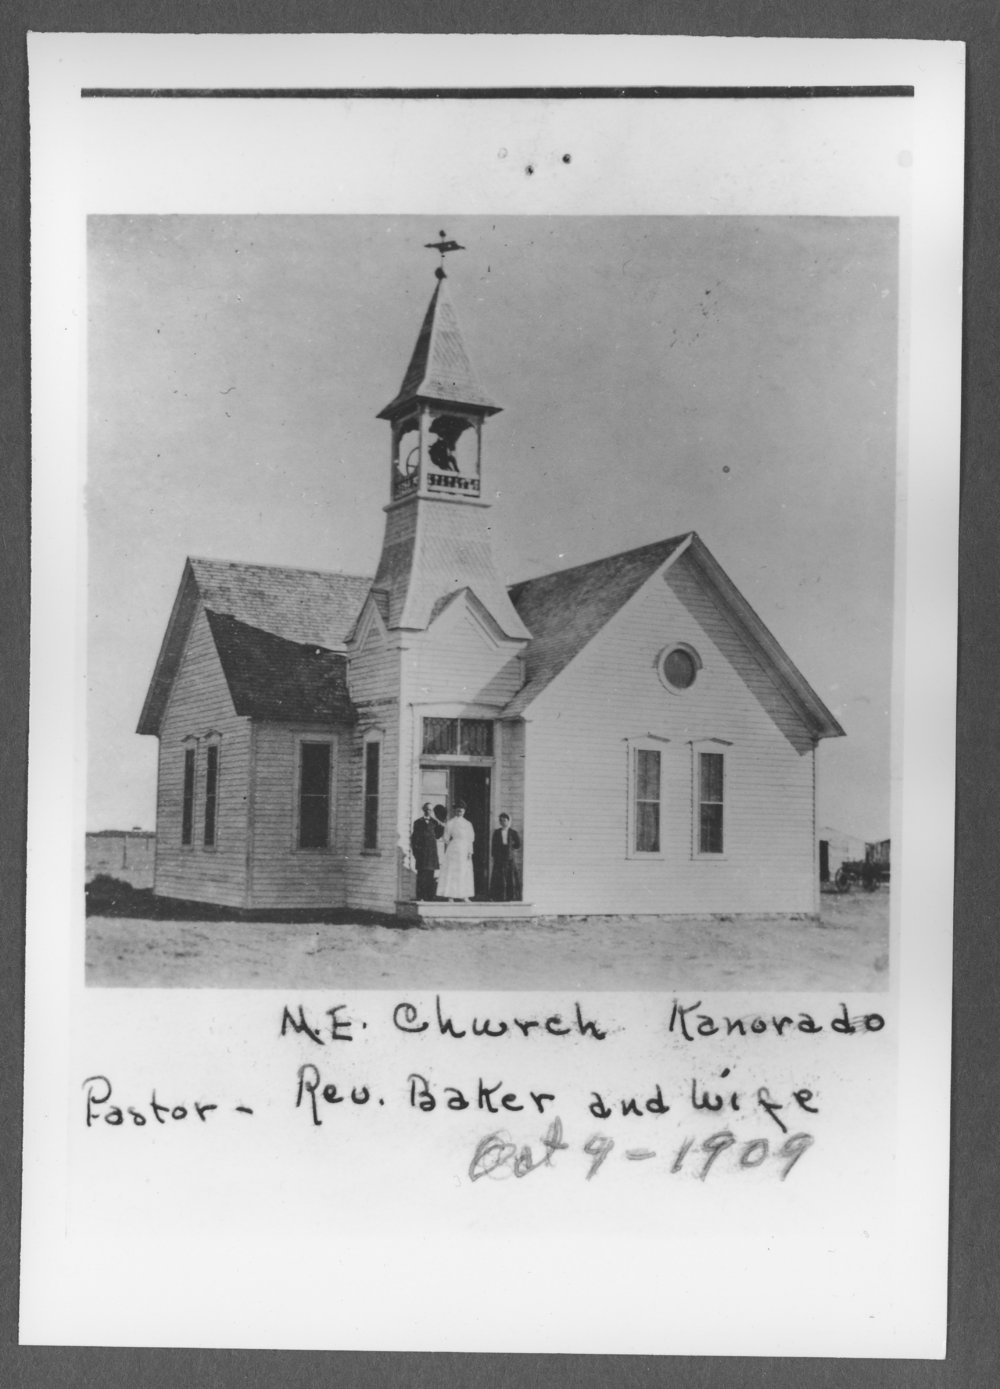 Scenes from Sherman County, Kansas - Methodist Episcopal Church on October 9, 1909, showing Reverend Baker and his wife, in Kanorado, Kansas.